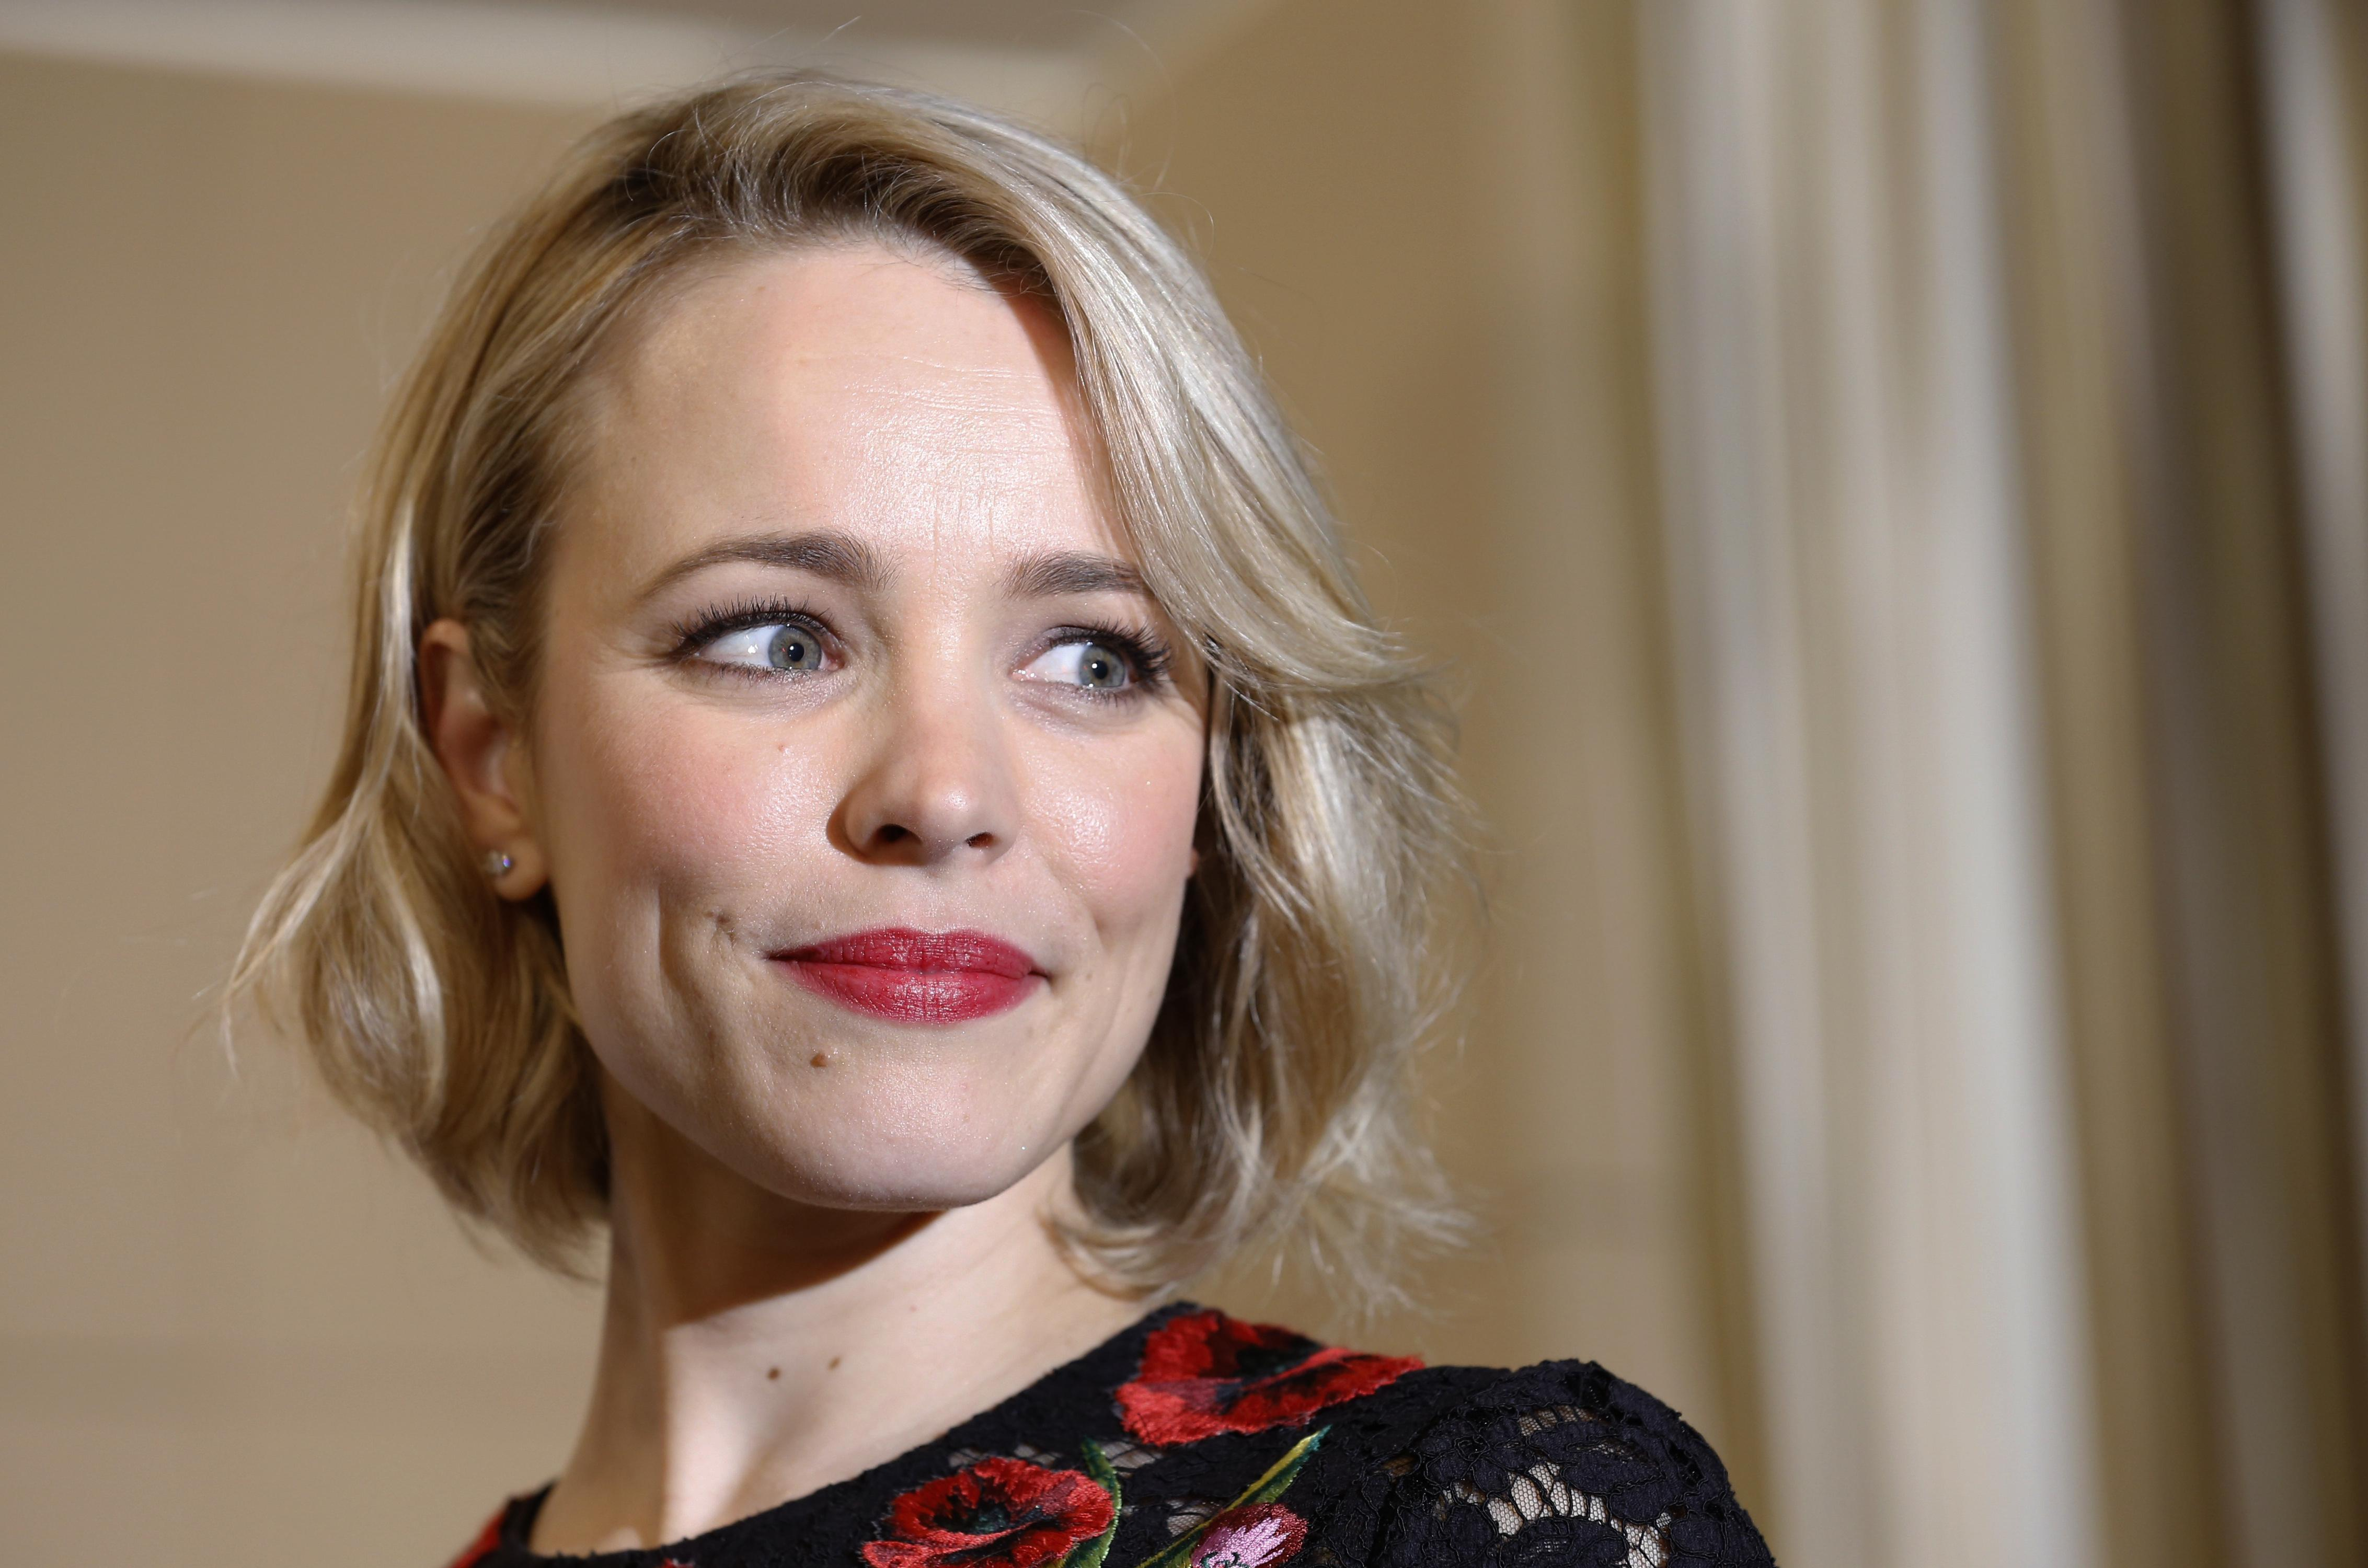 Rachel Mcadams 2018 Wallpapers Wallpapersafari